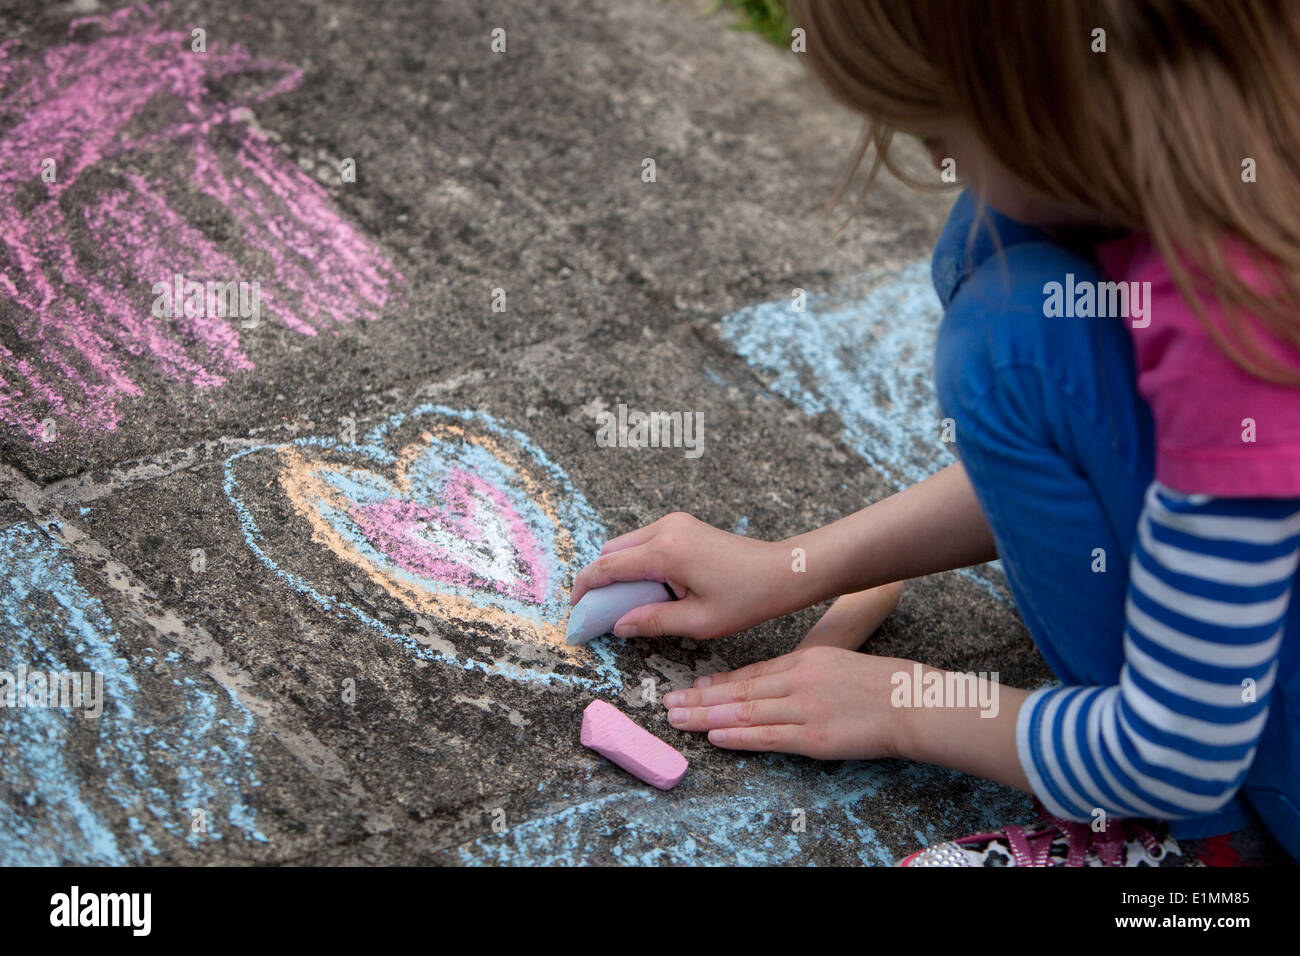 Girl drawing a chalk heart on a concrete sidewalk. - Stock Image